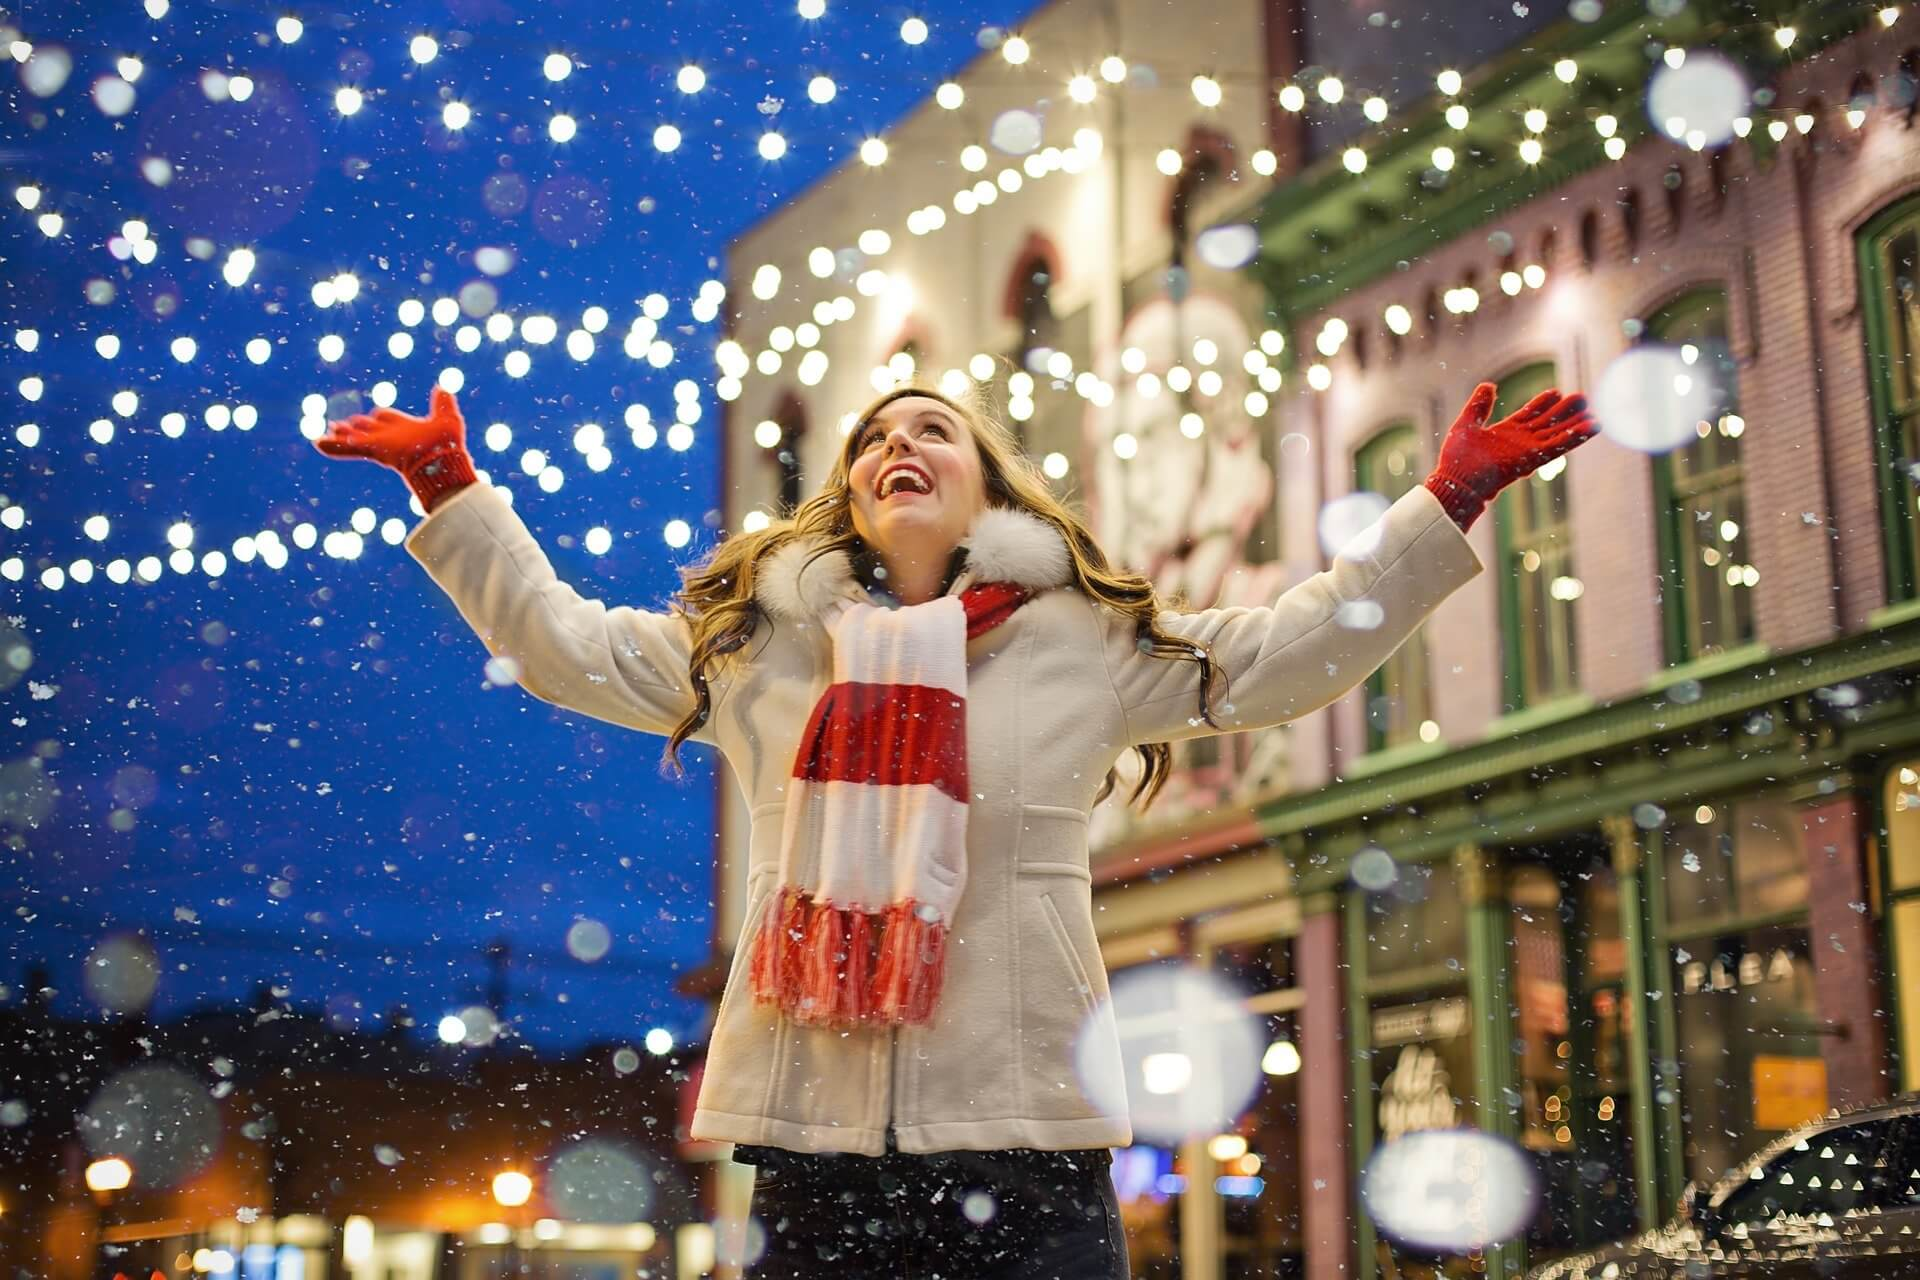 Woman stands outside in the snow in a Christmas decorated street